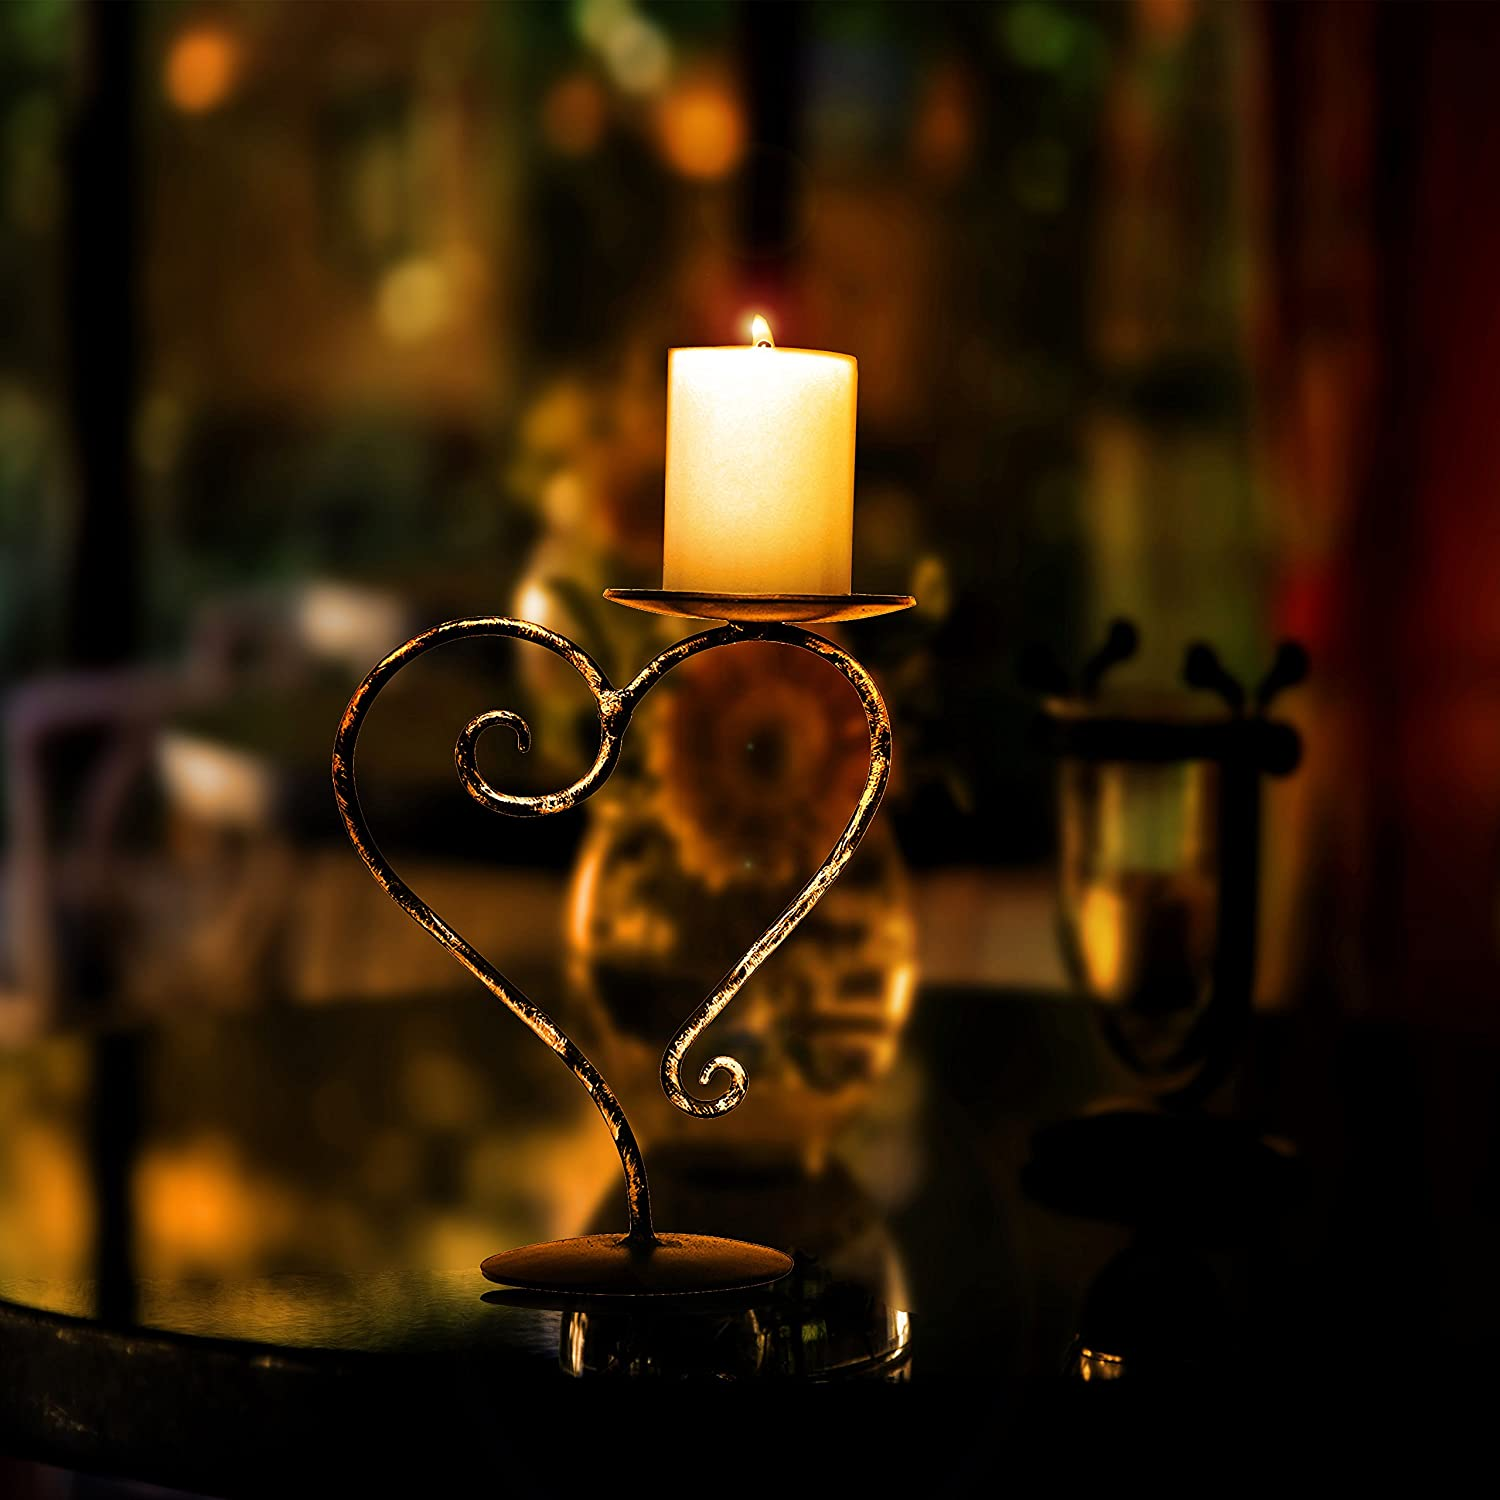 Crafia Golden Black Heart Shape Candle Holder Coffee Table Decorative Centerpieces Wrought Holders For Home Holiday Decoration Light Dinner